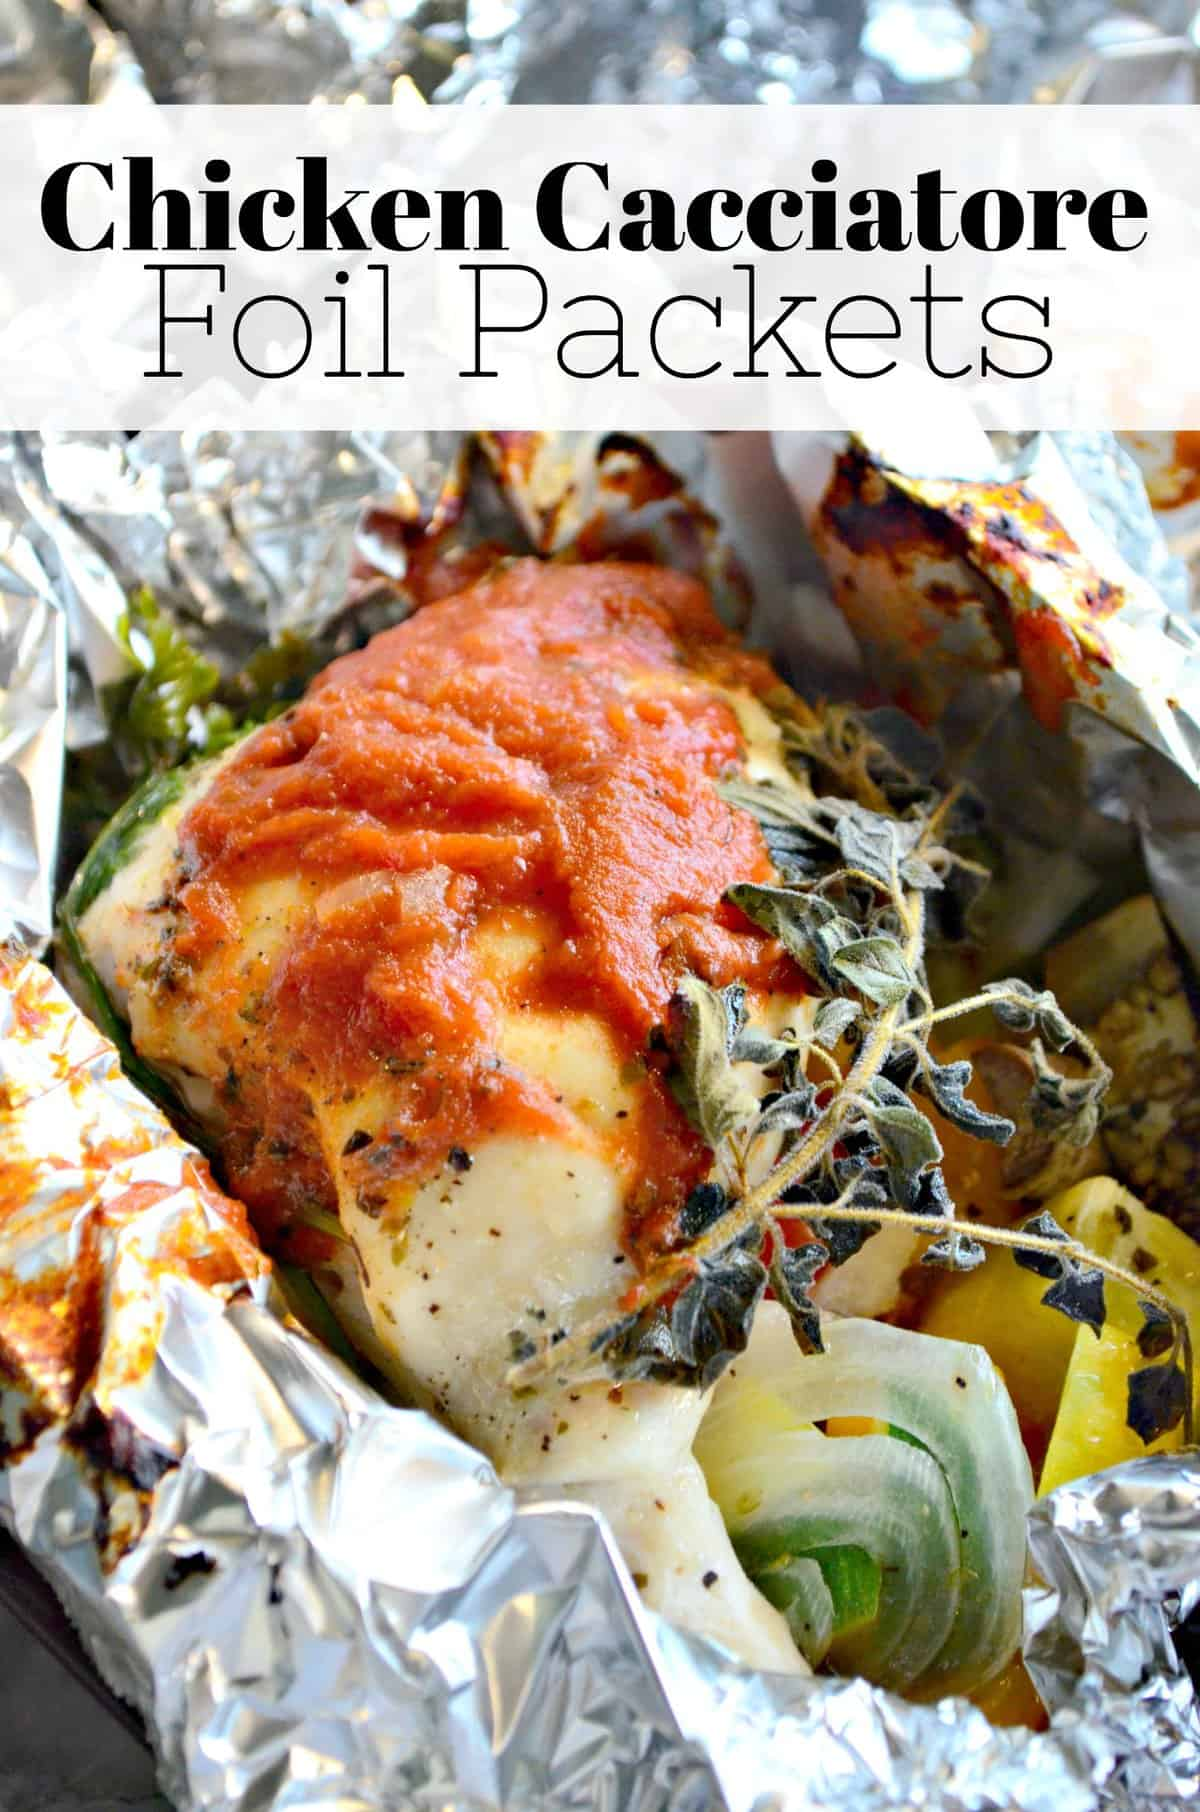 close up of chicken in an open foil with herbs and red sauce.